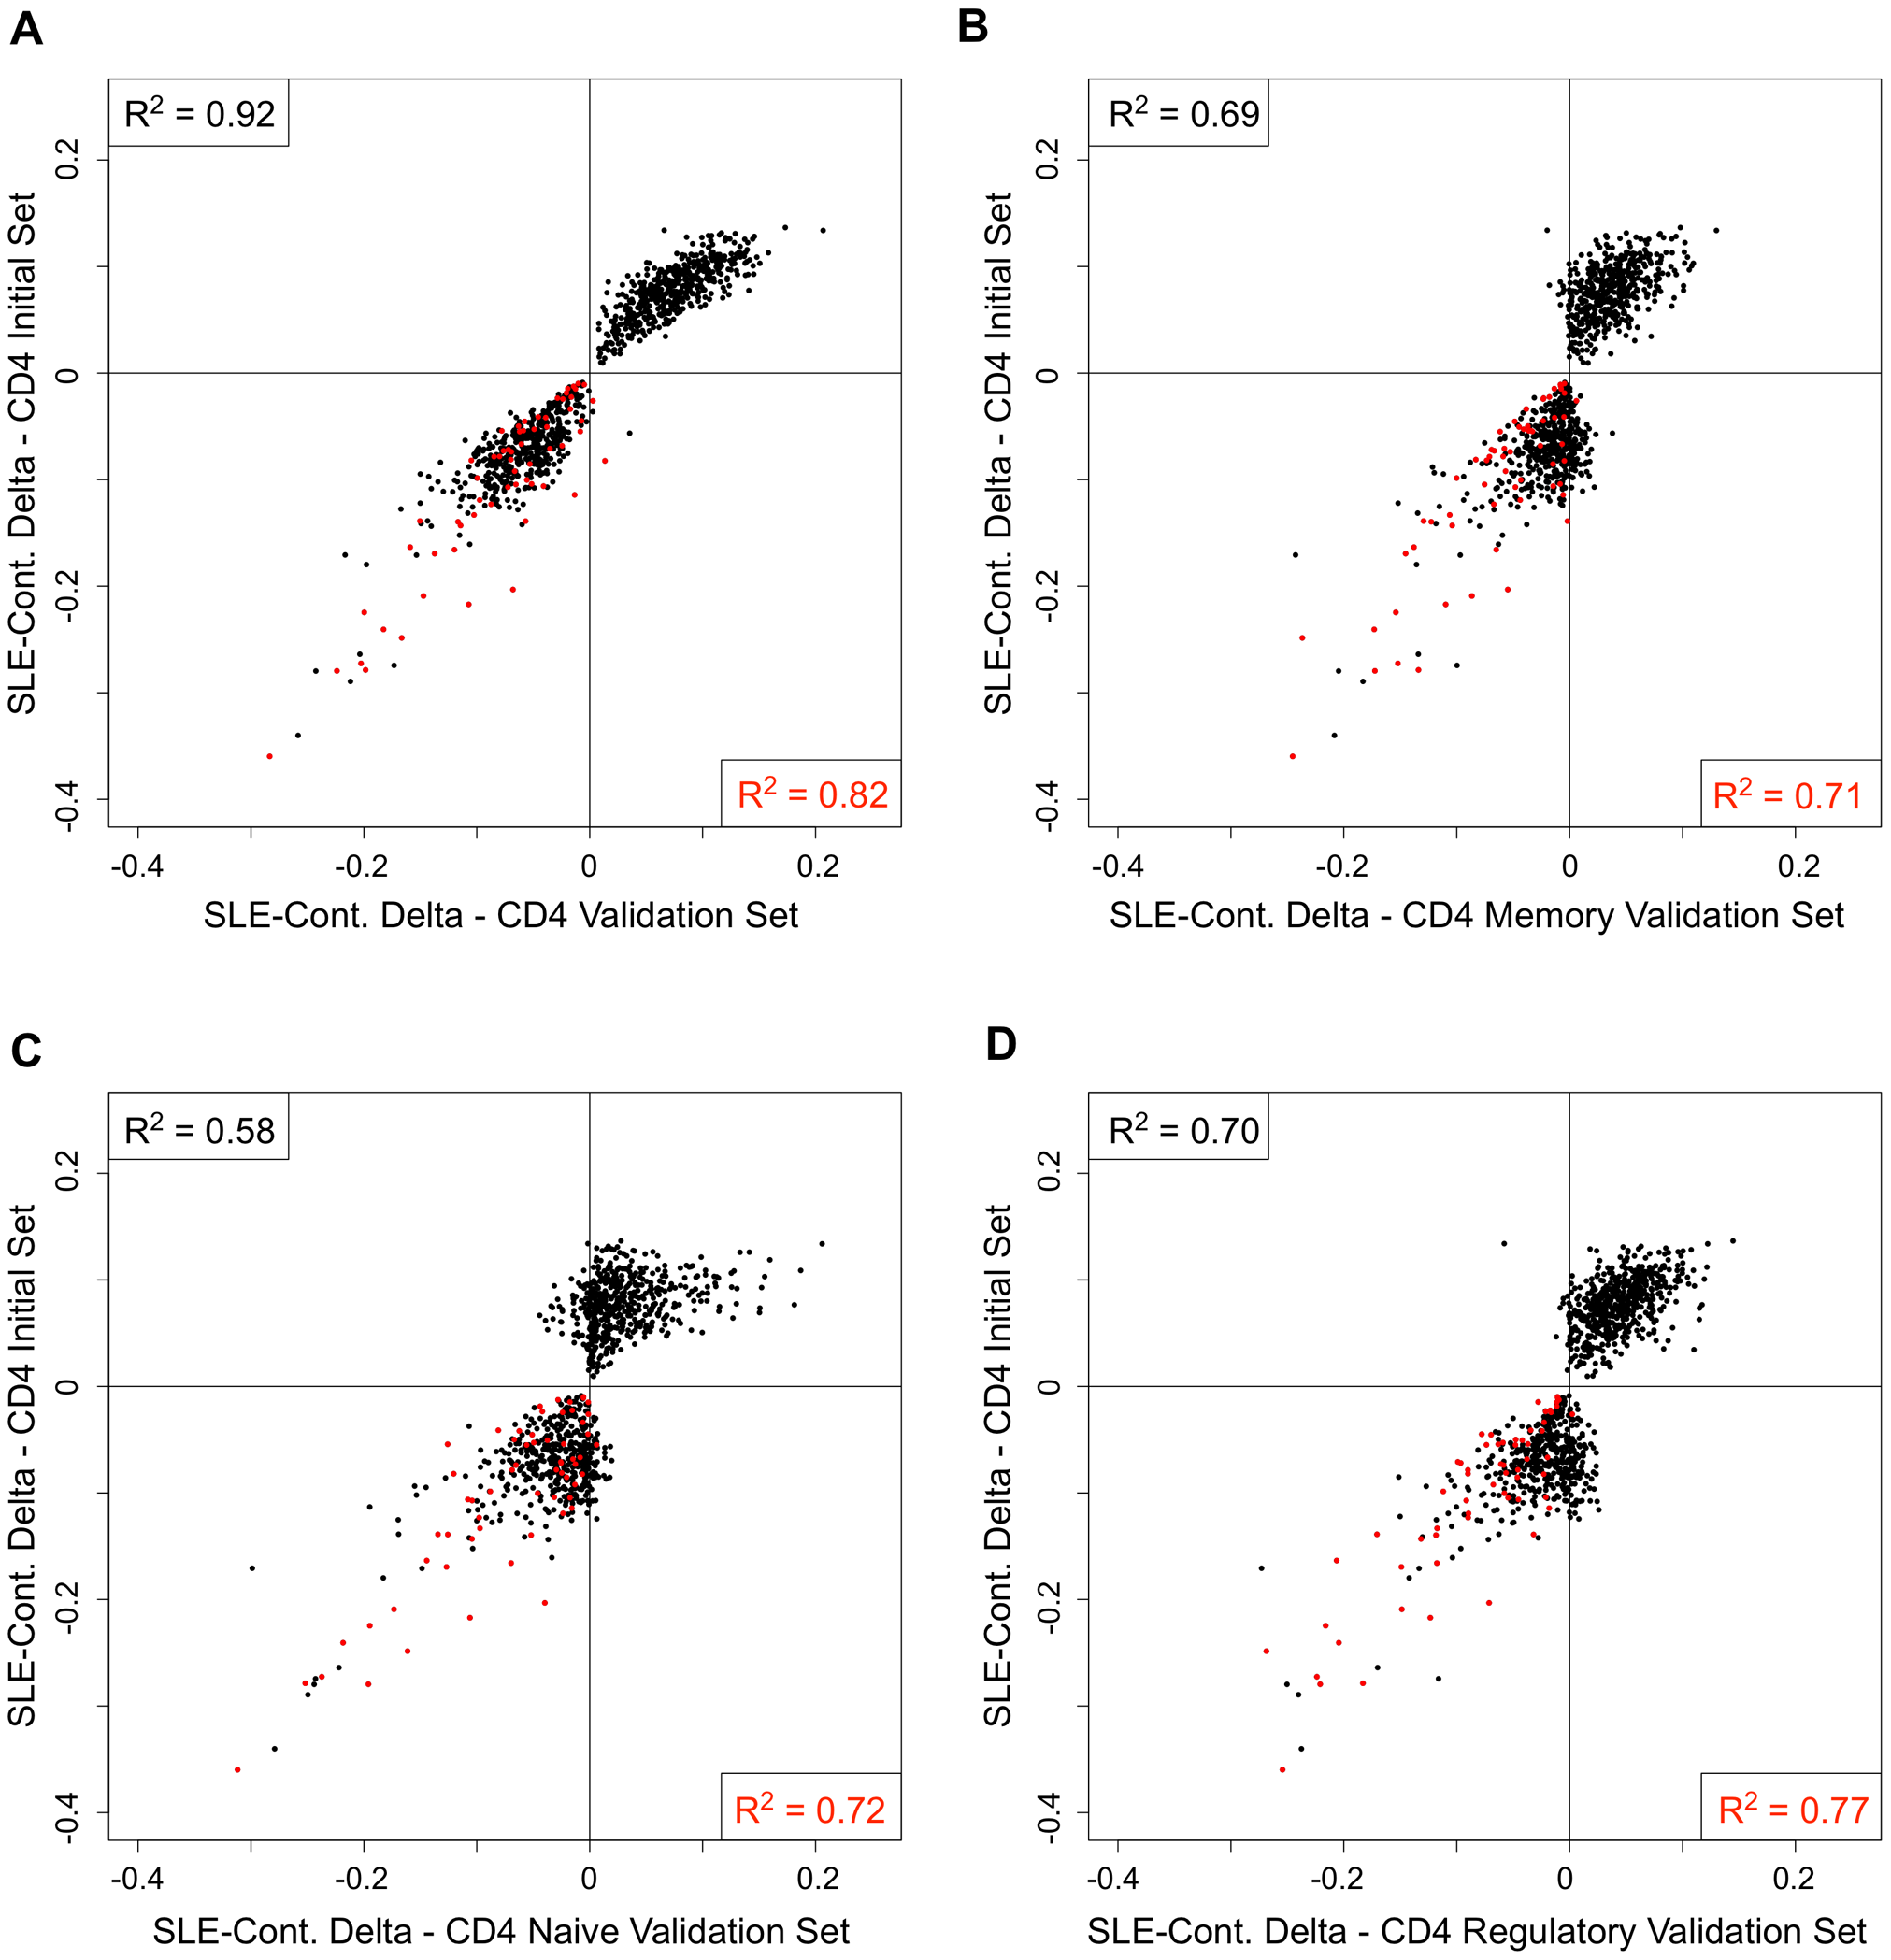 Comparison of the SLE-control methylation differences in sorted T-cell populations.